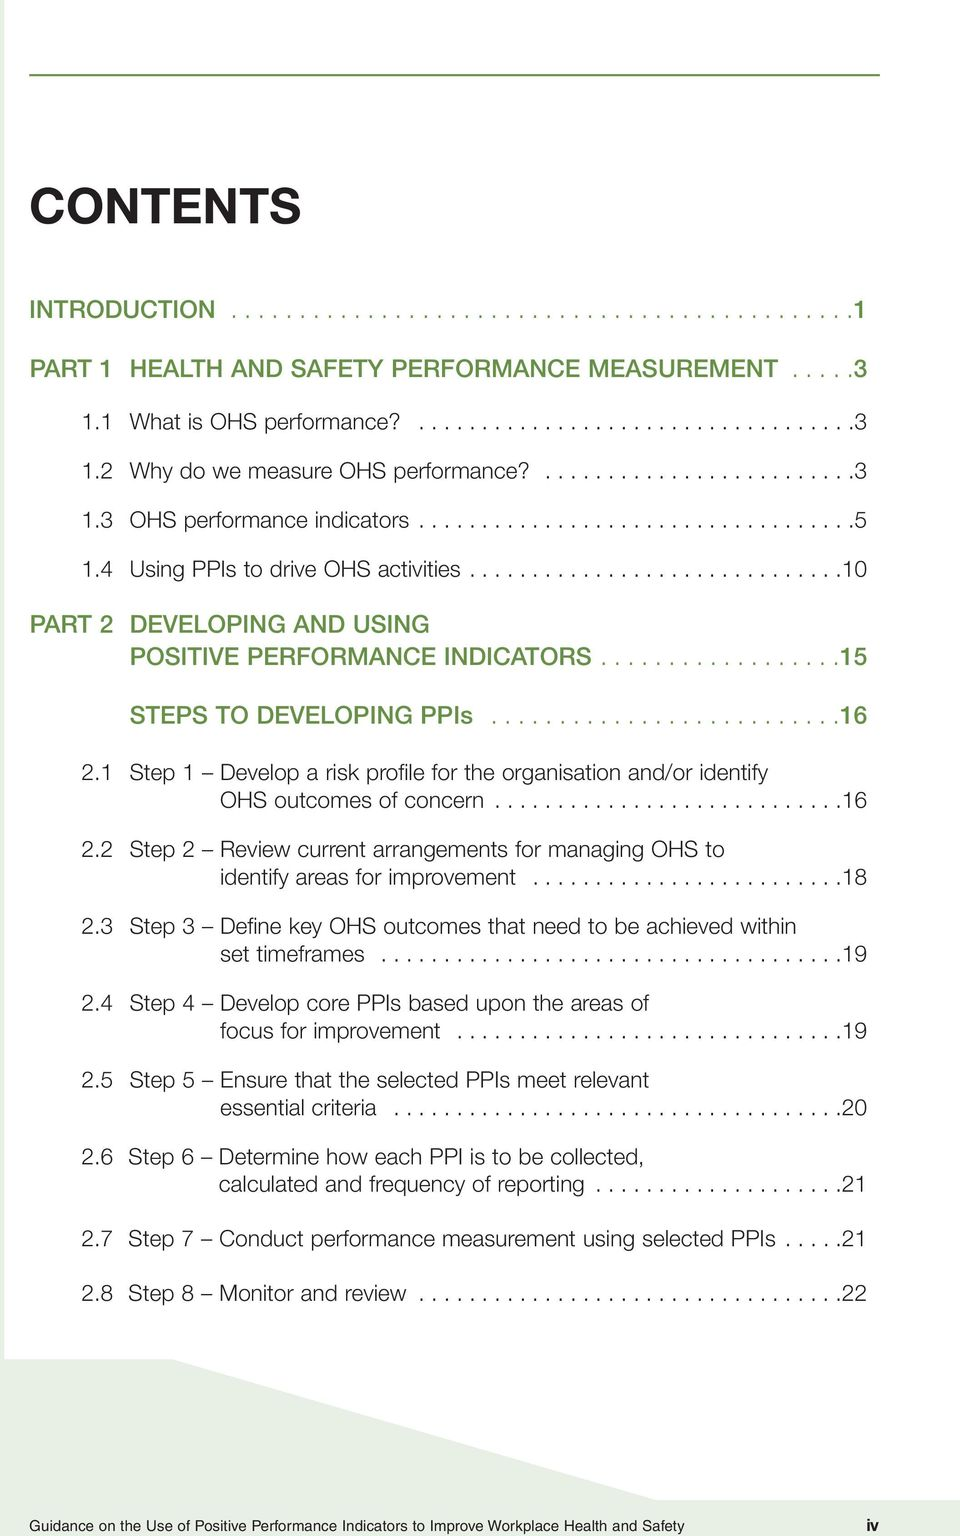 .................15 STEPS TO DEVELOPING PPIs..........................16 2.1 Step 1 Develop a risk profile for the organisation and/or identify OHS outcomes of concern............................16 2.2 Step 2 Review current arrangements for managing OHS to identify areas for improvement.